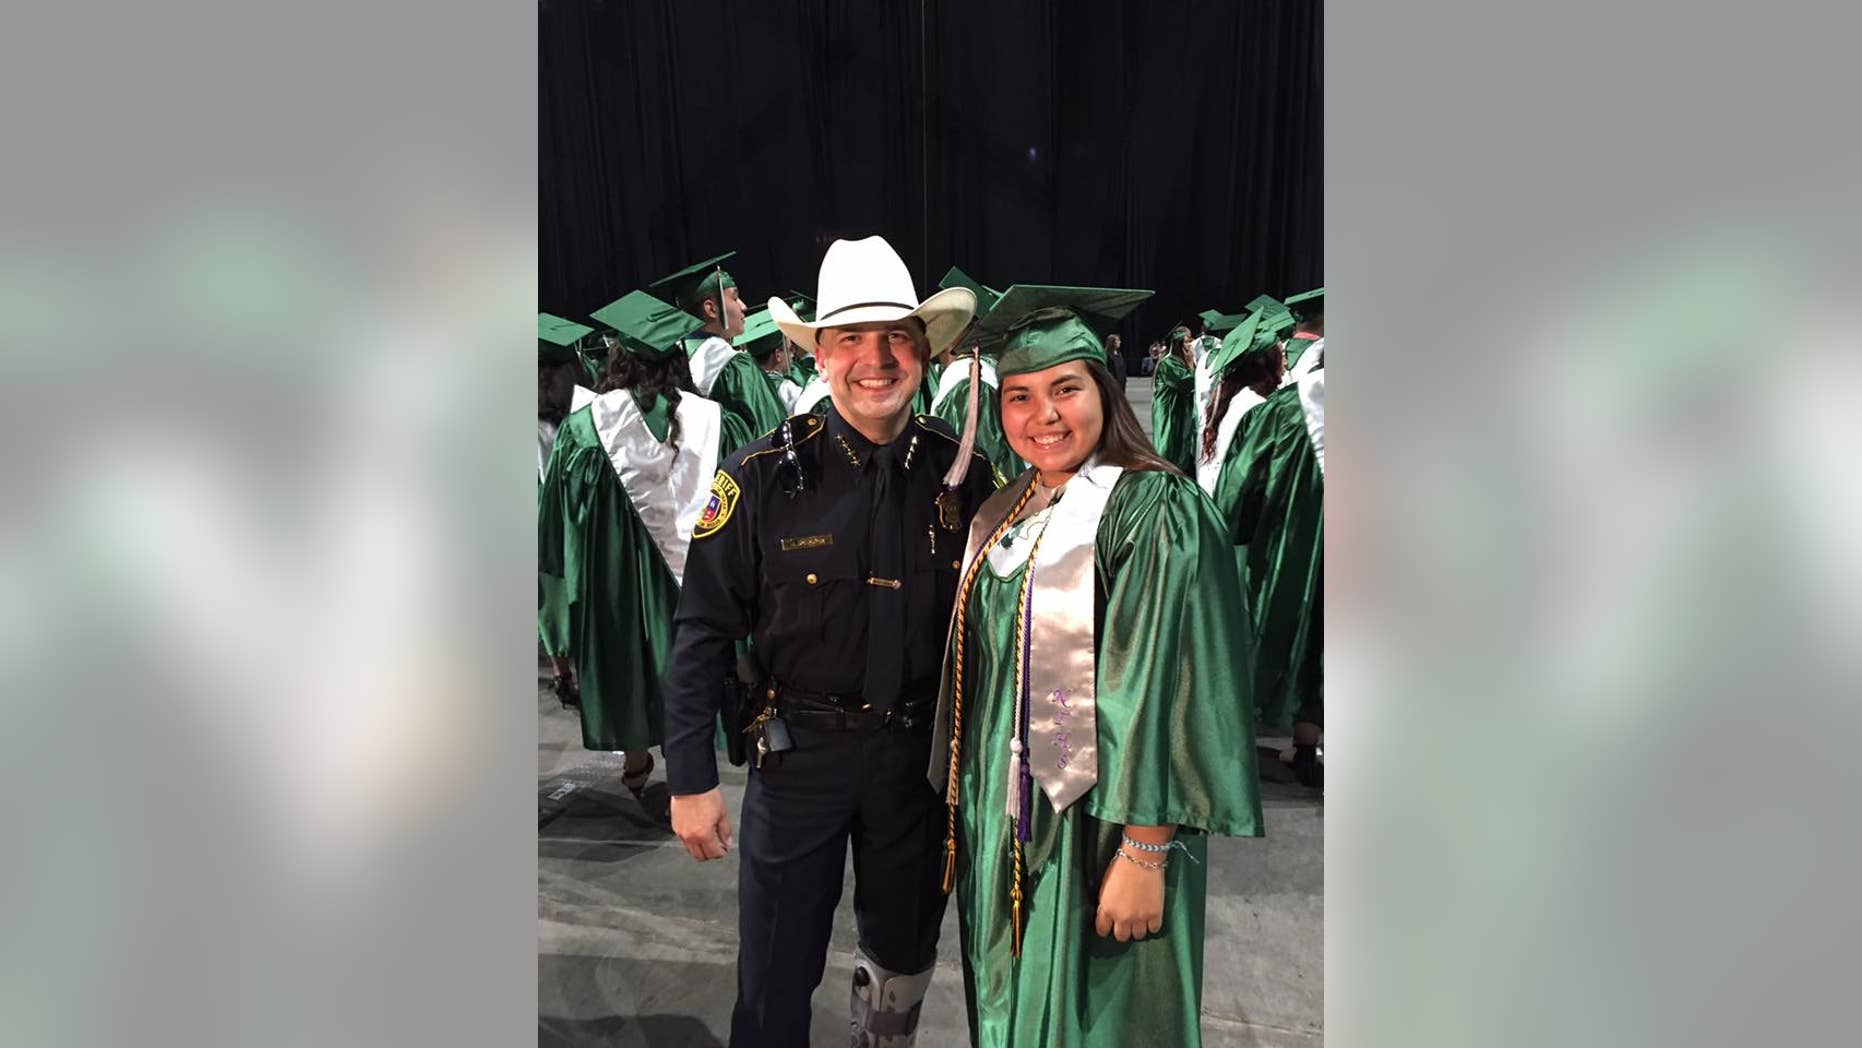 Gloria Garza's father died in the line of duty when she was 3-years-old.